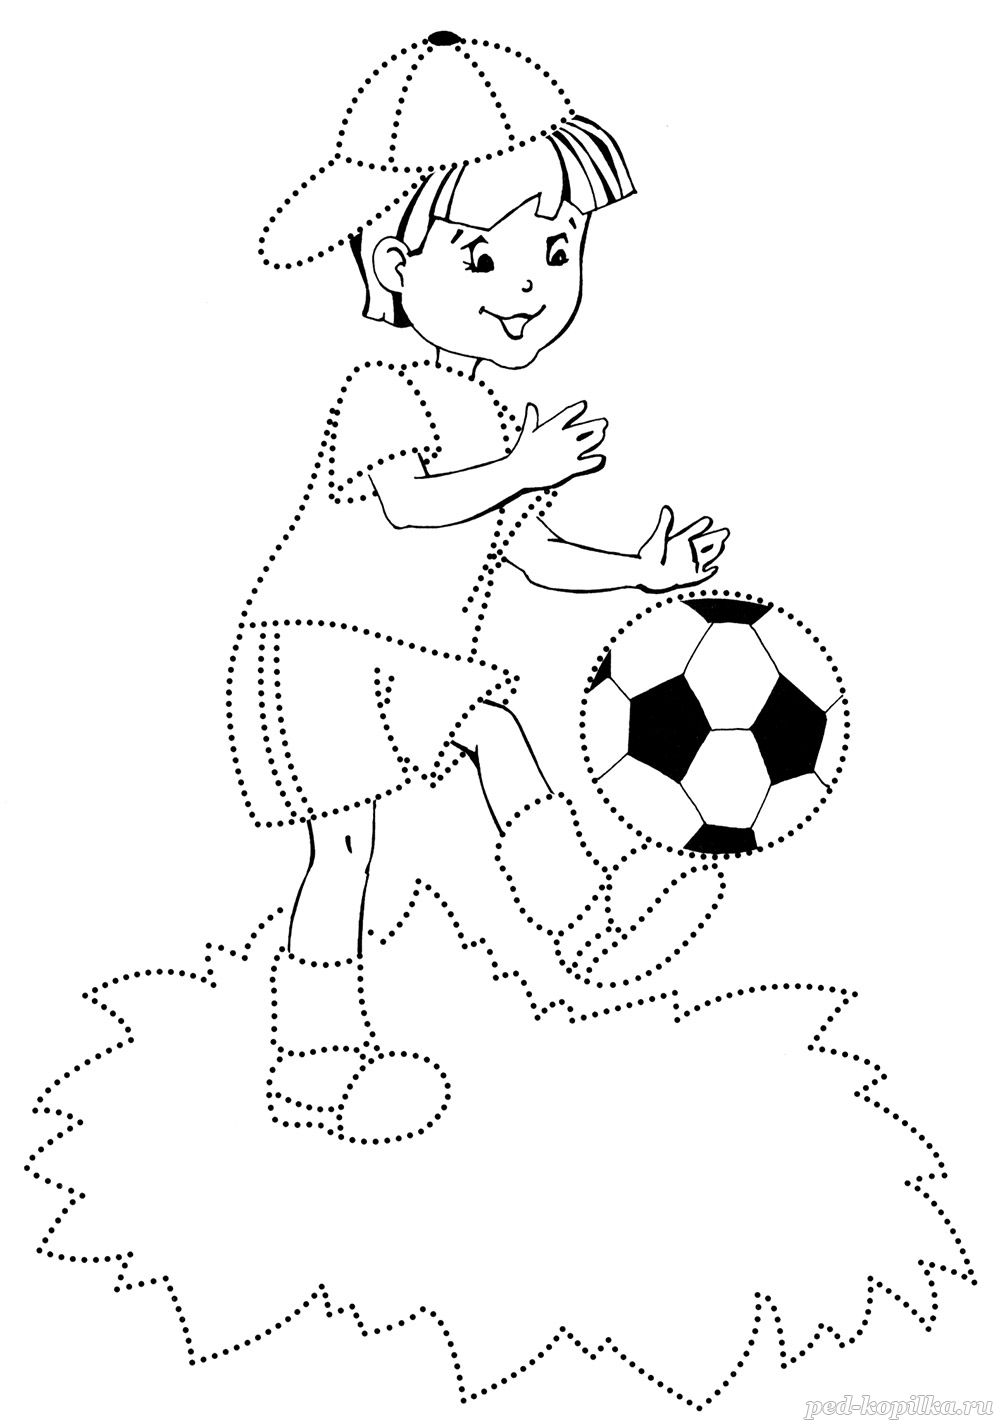 Soccer Coloring Pages for childrens printable for free